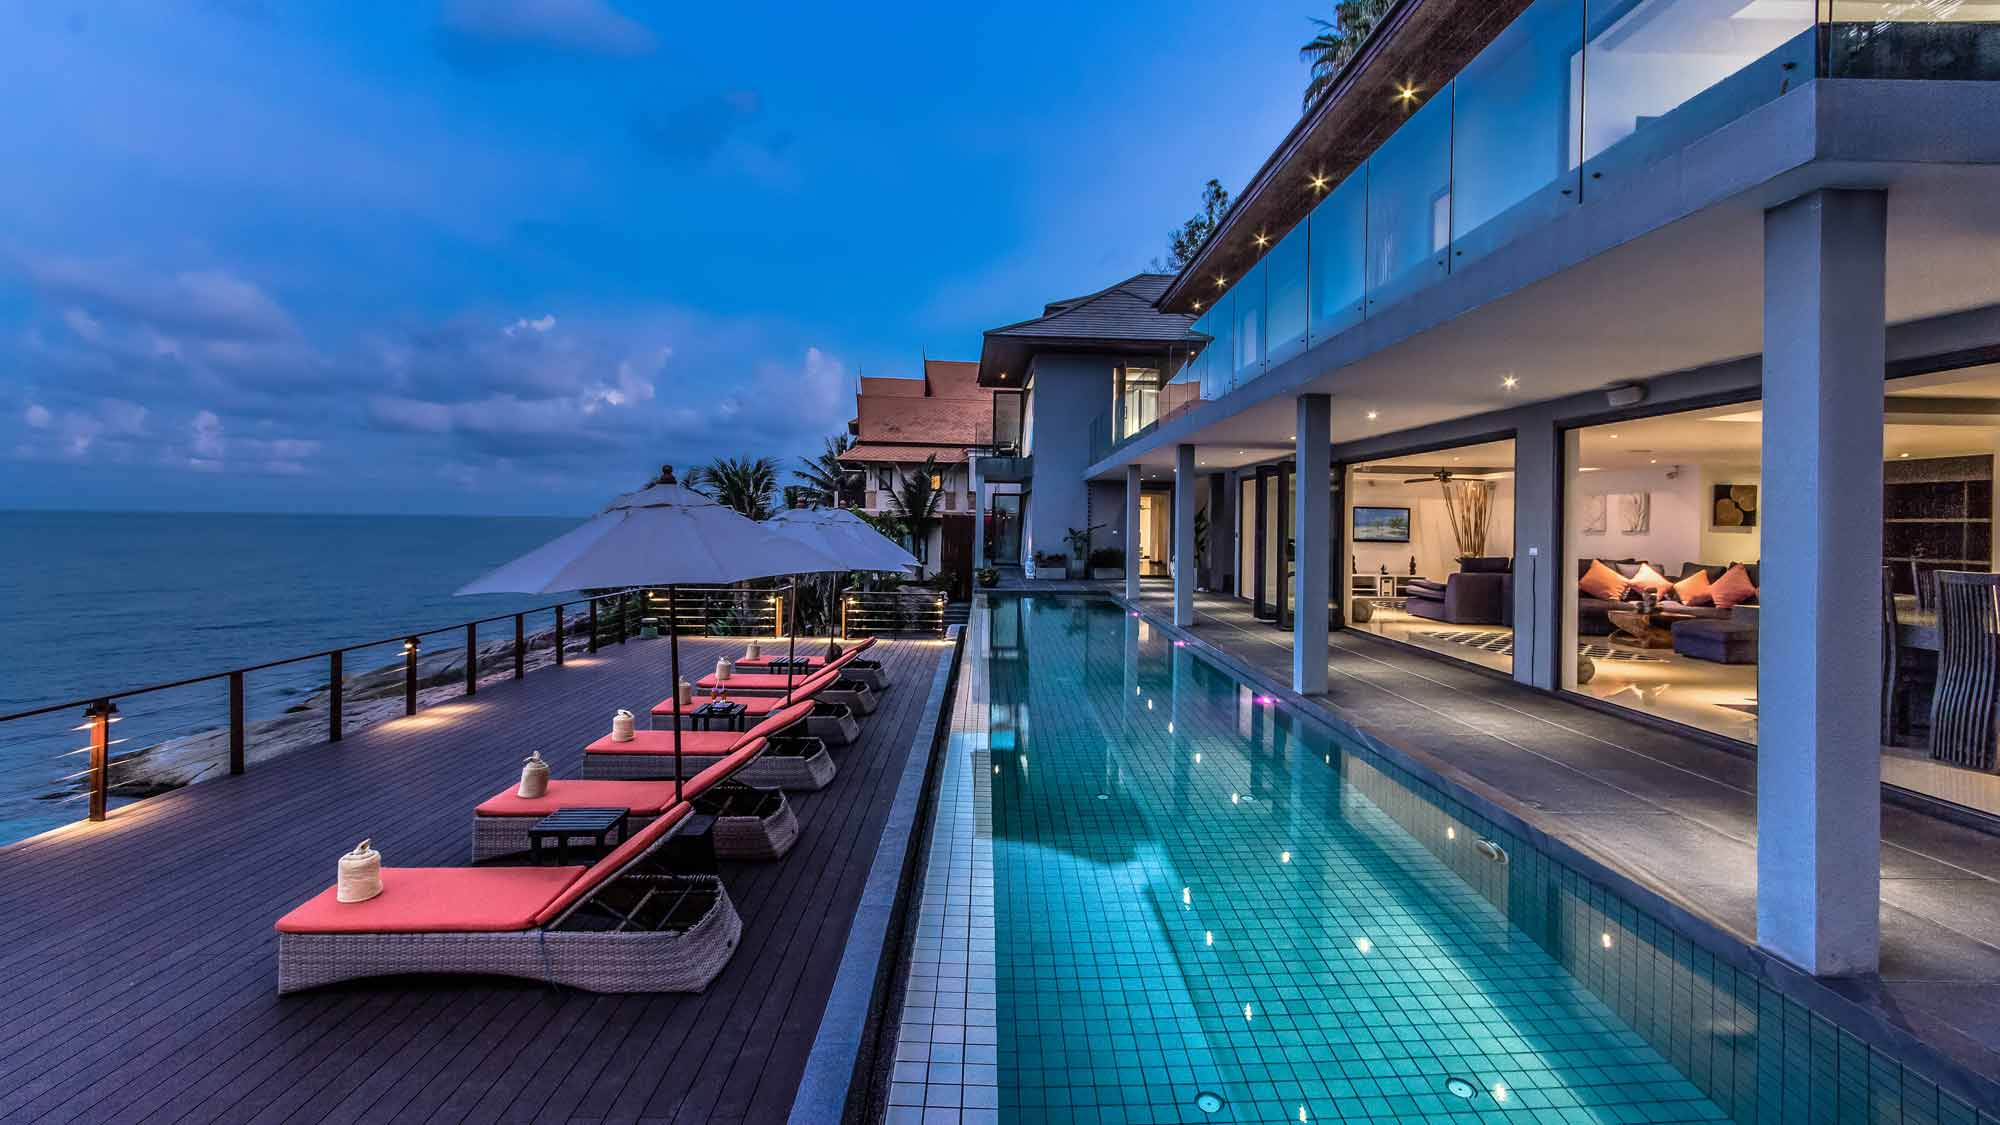 5 Bedroom Sea View Villa with Private Pool at Chaweng Koh Samui Thailand